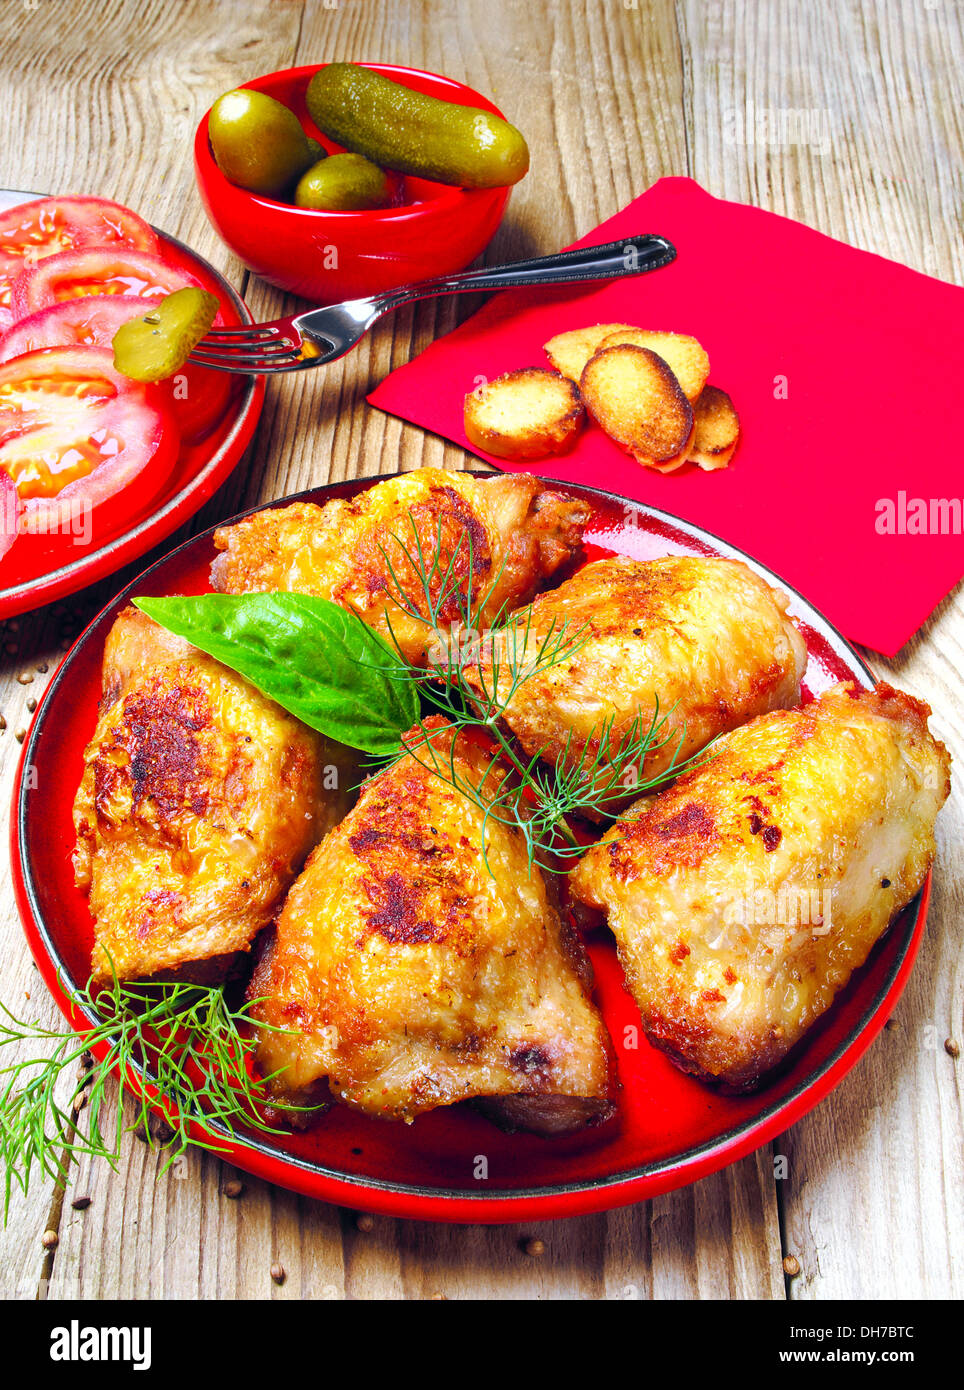 Roast chicken with tomatoes and cucumbers on a wooden background - Stock Image